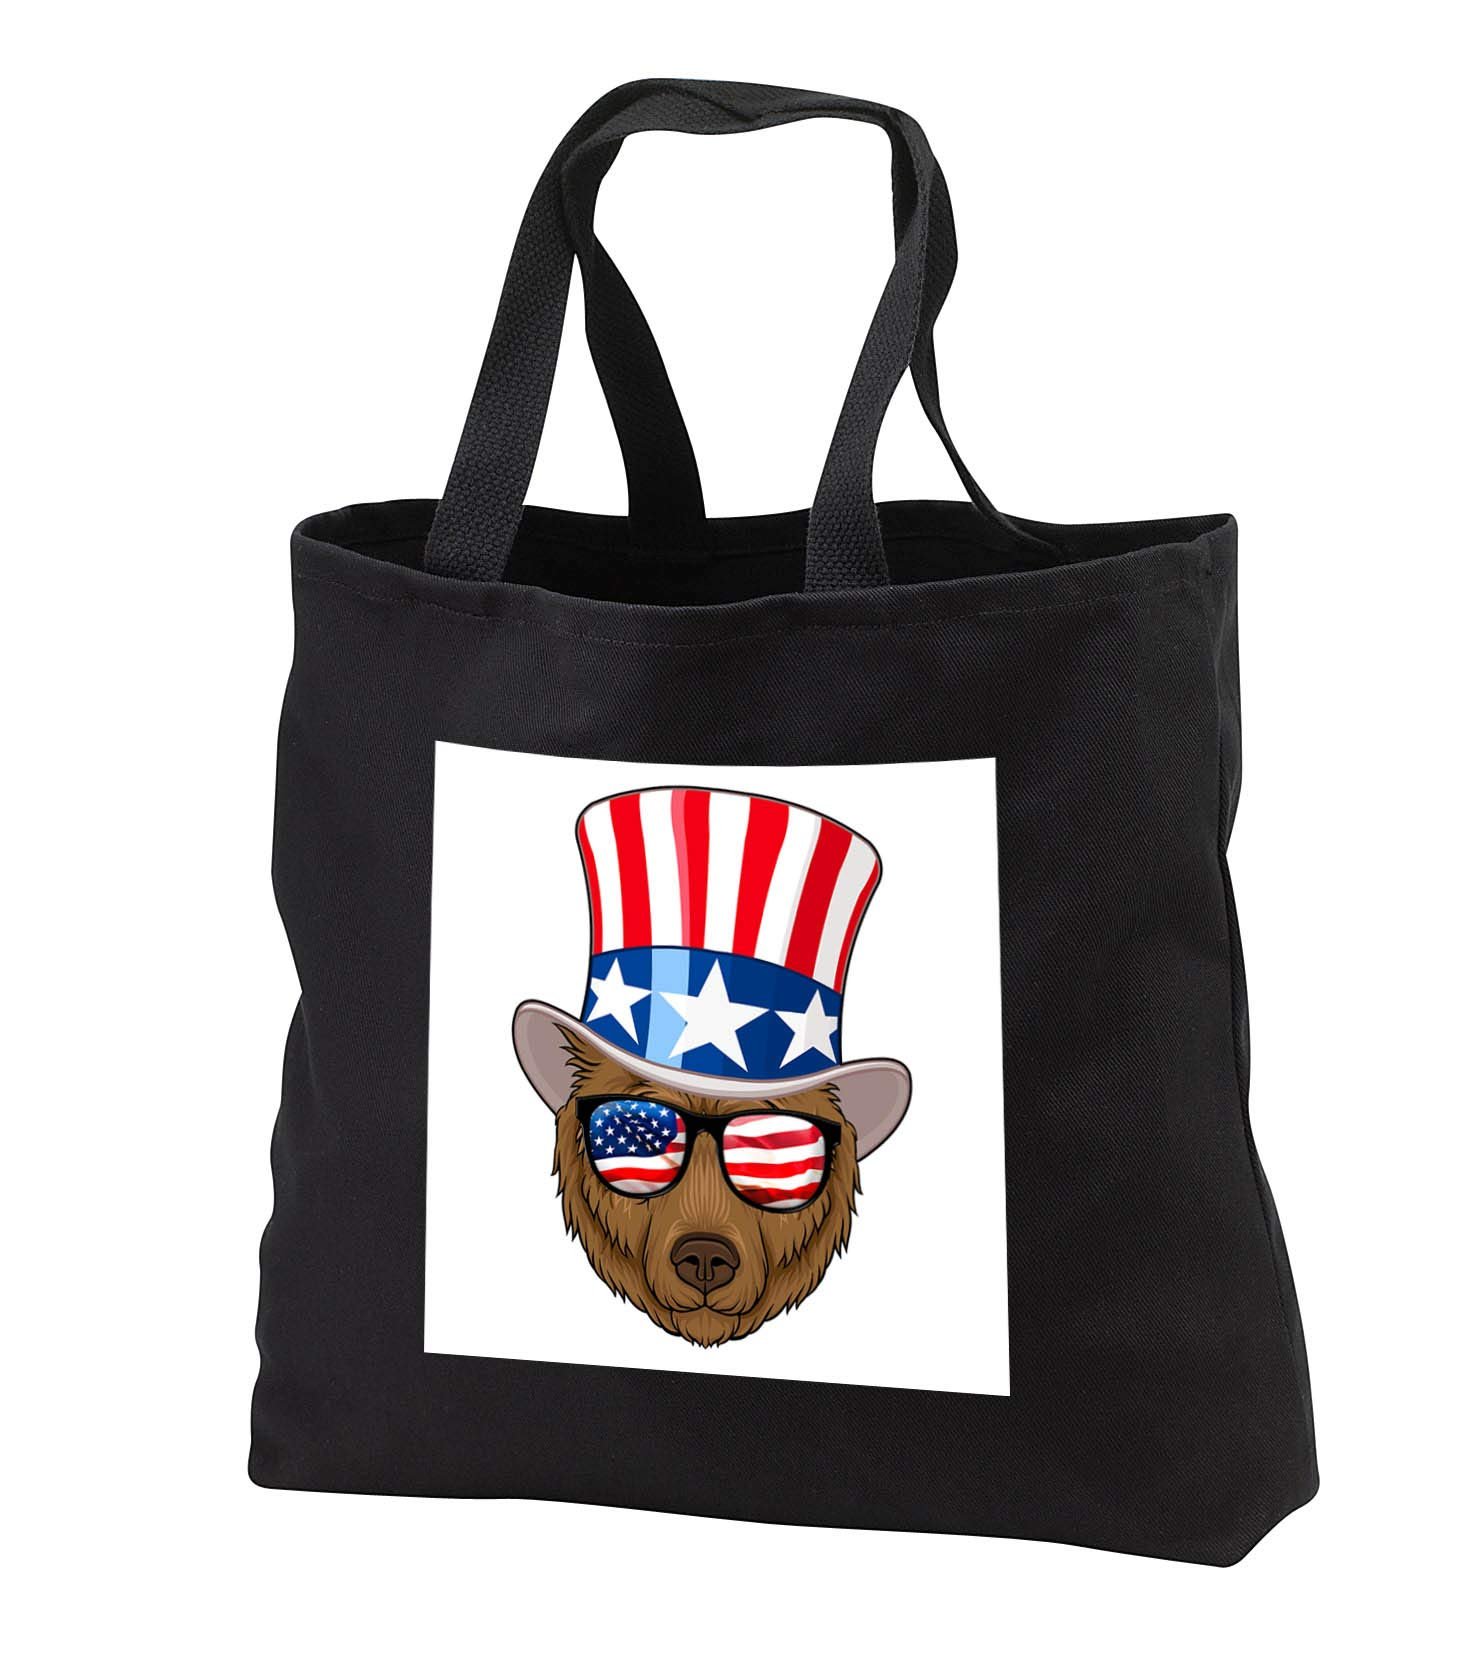 Carsten Reisinger - Illustrations - Patriotic Panda with top hat and sunglasses with the American flag - Tote Bags - Black Tote Bag JUMBO 20w x 15h x 5d (tb_294847_3)